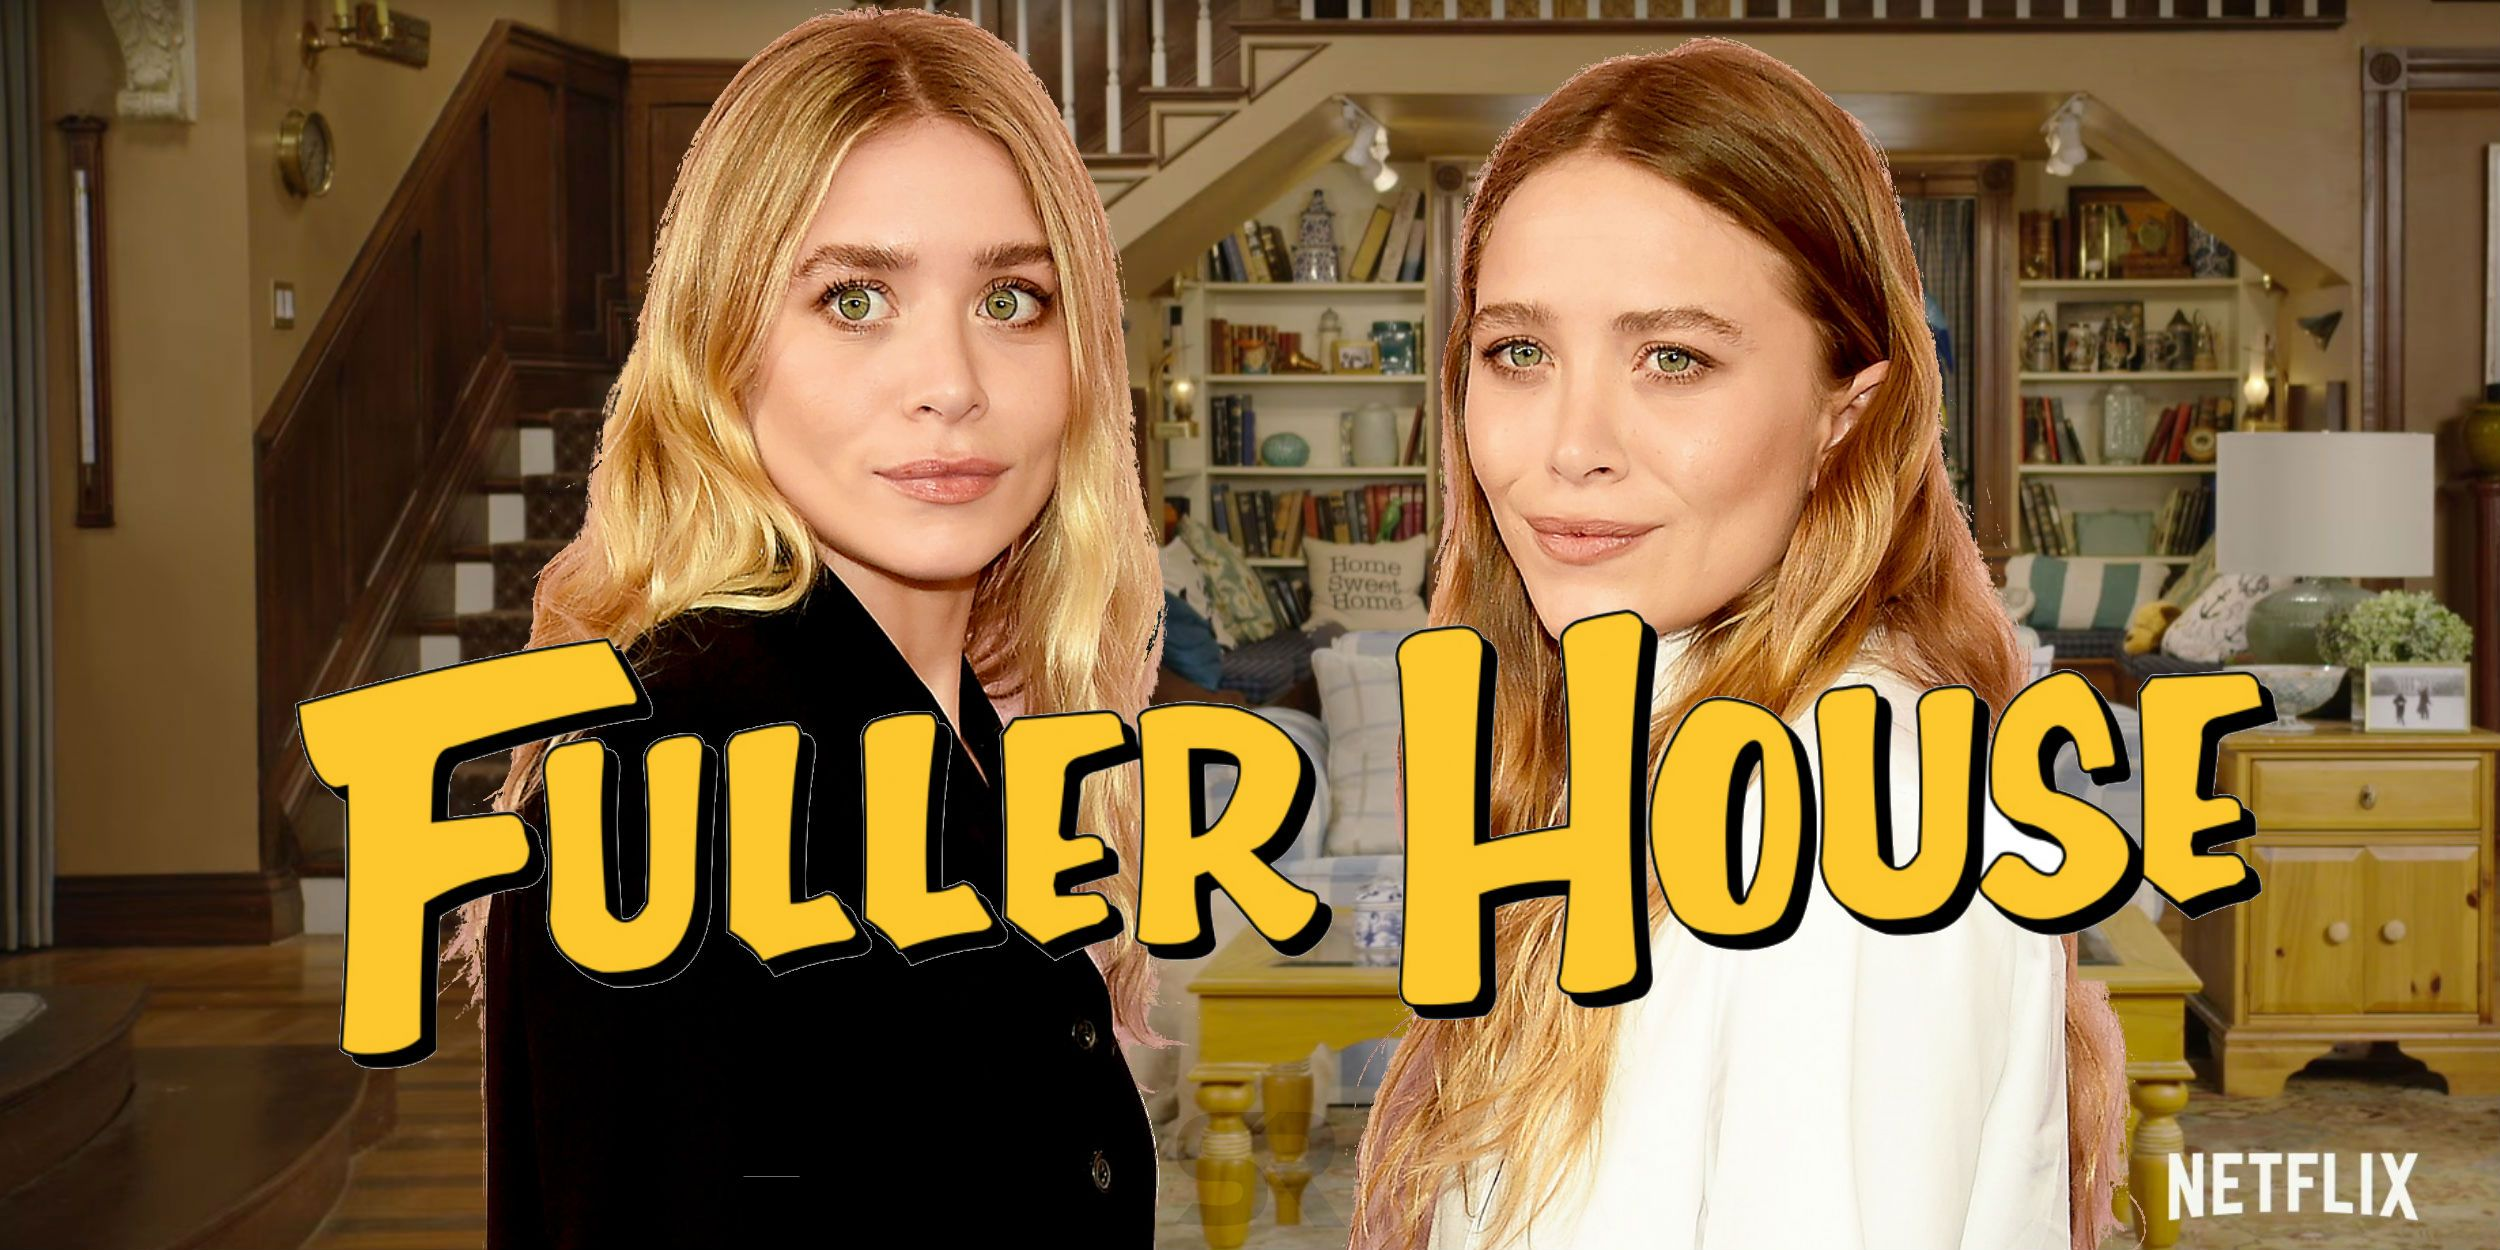 Fuller House: Every Reference To Michelle In The Netflix Series